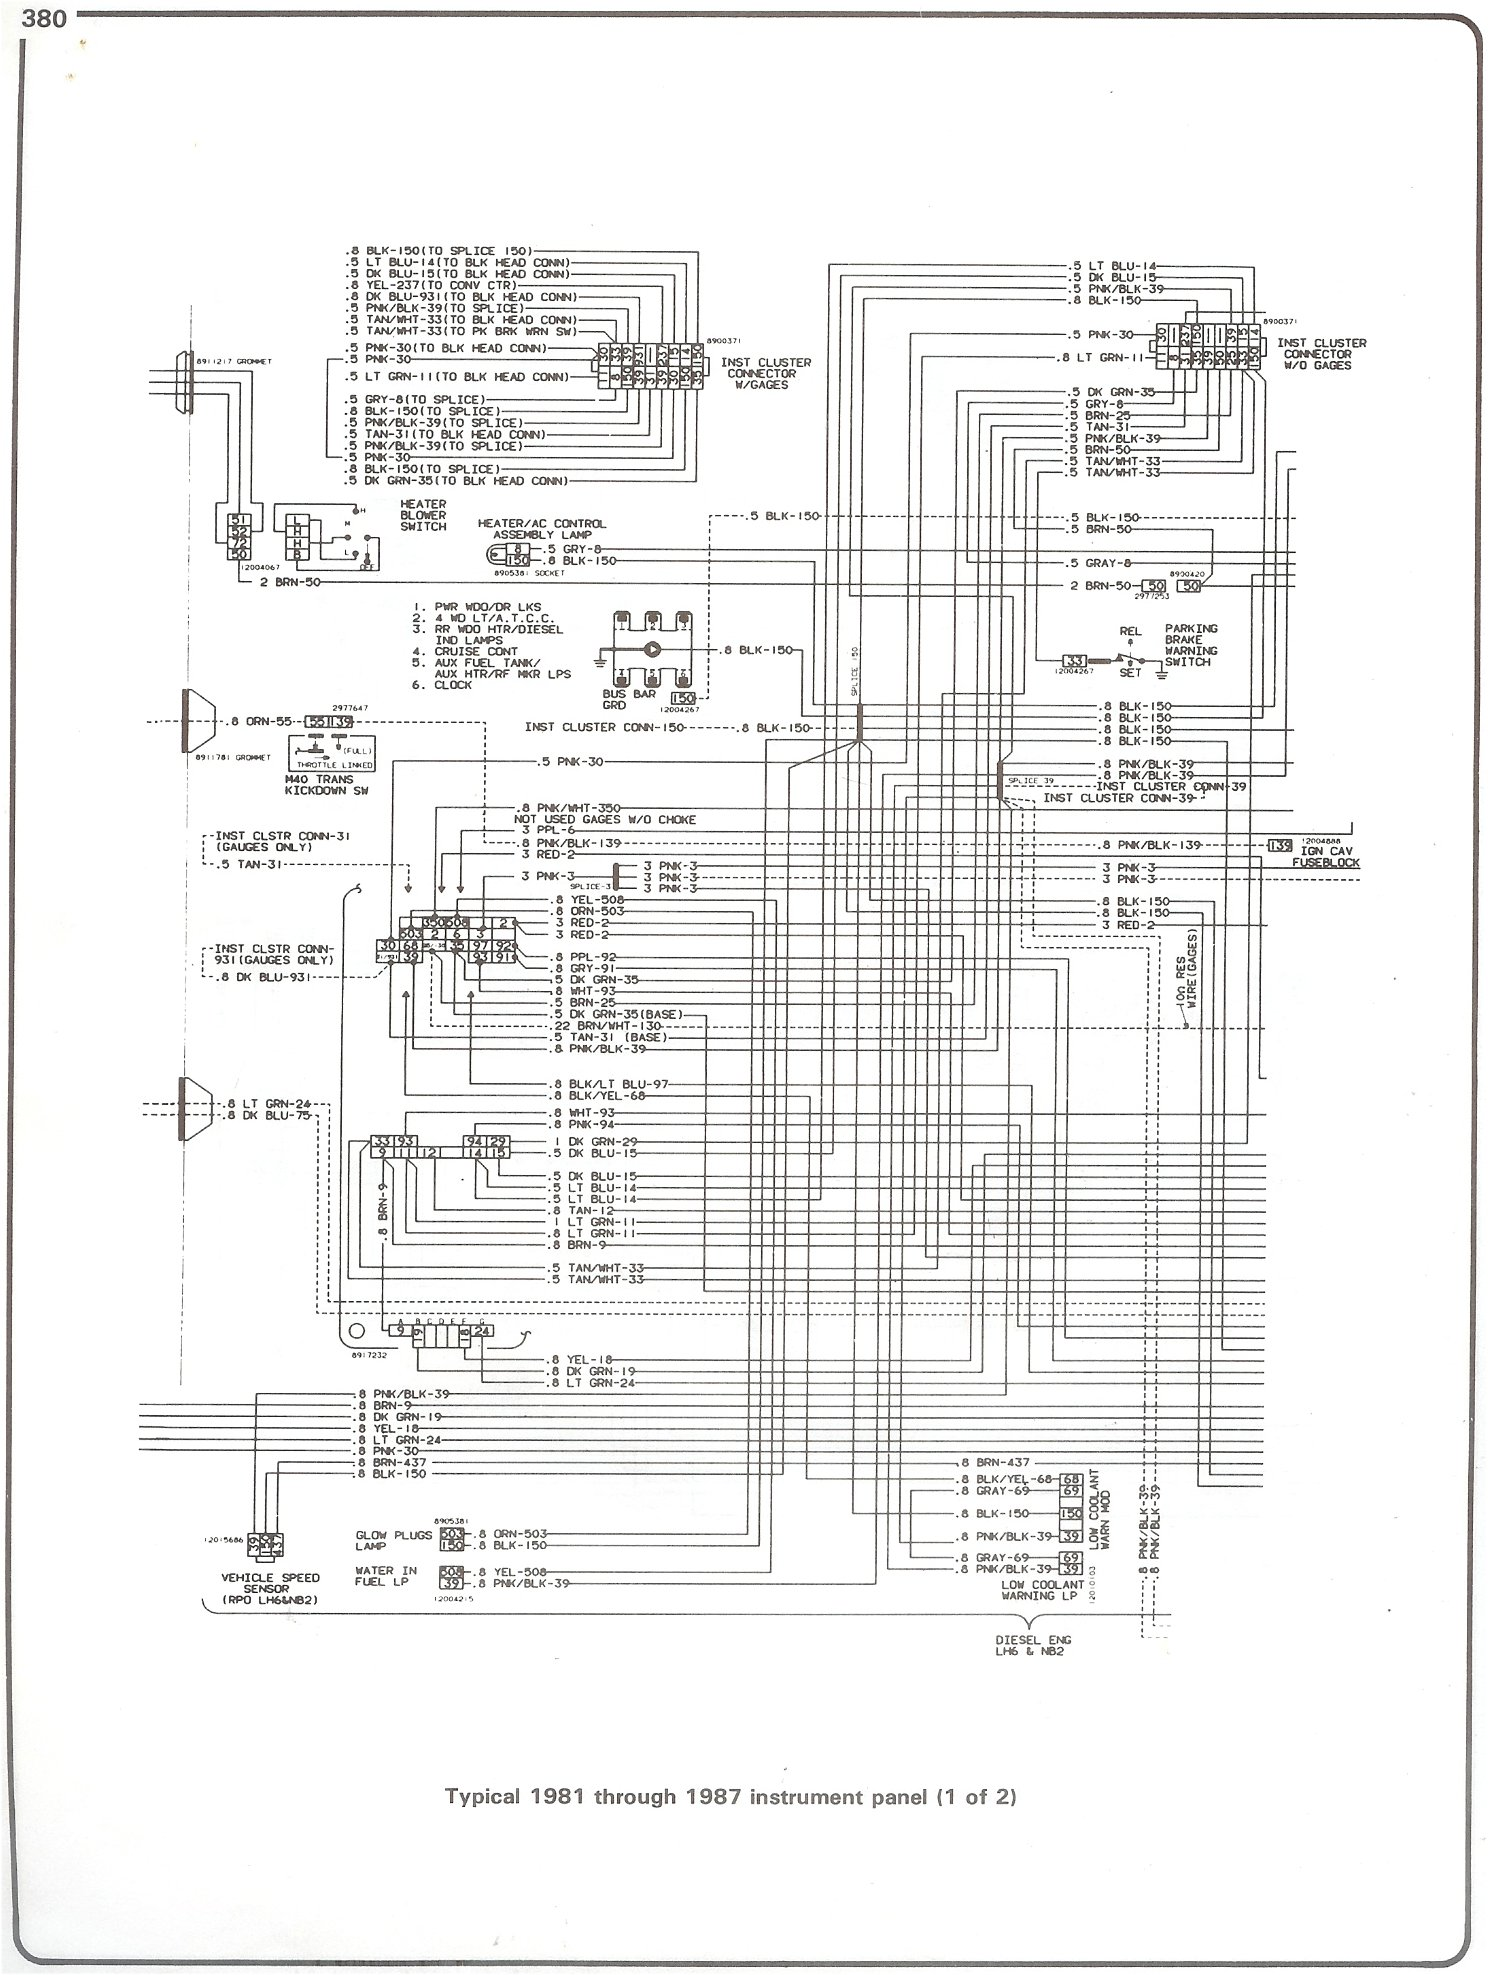 81 87_instrument_pg1 chevrolet wiring schematics chevrolet wiring diagrams instruction chevrolet wiring diagram at mifinder.co